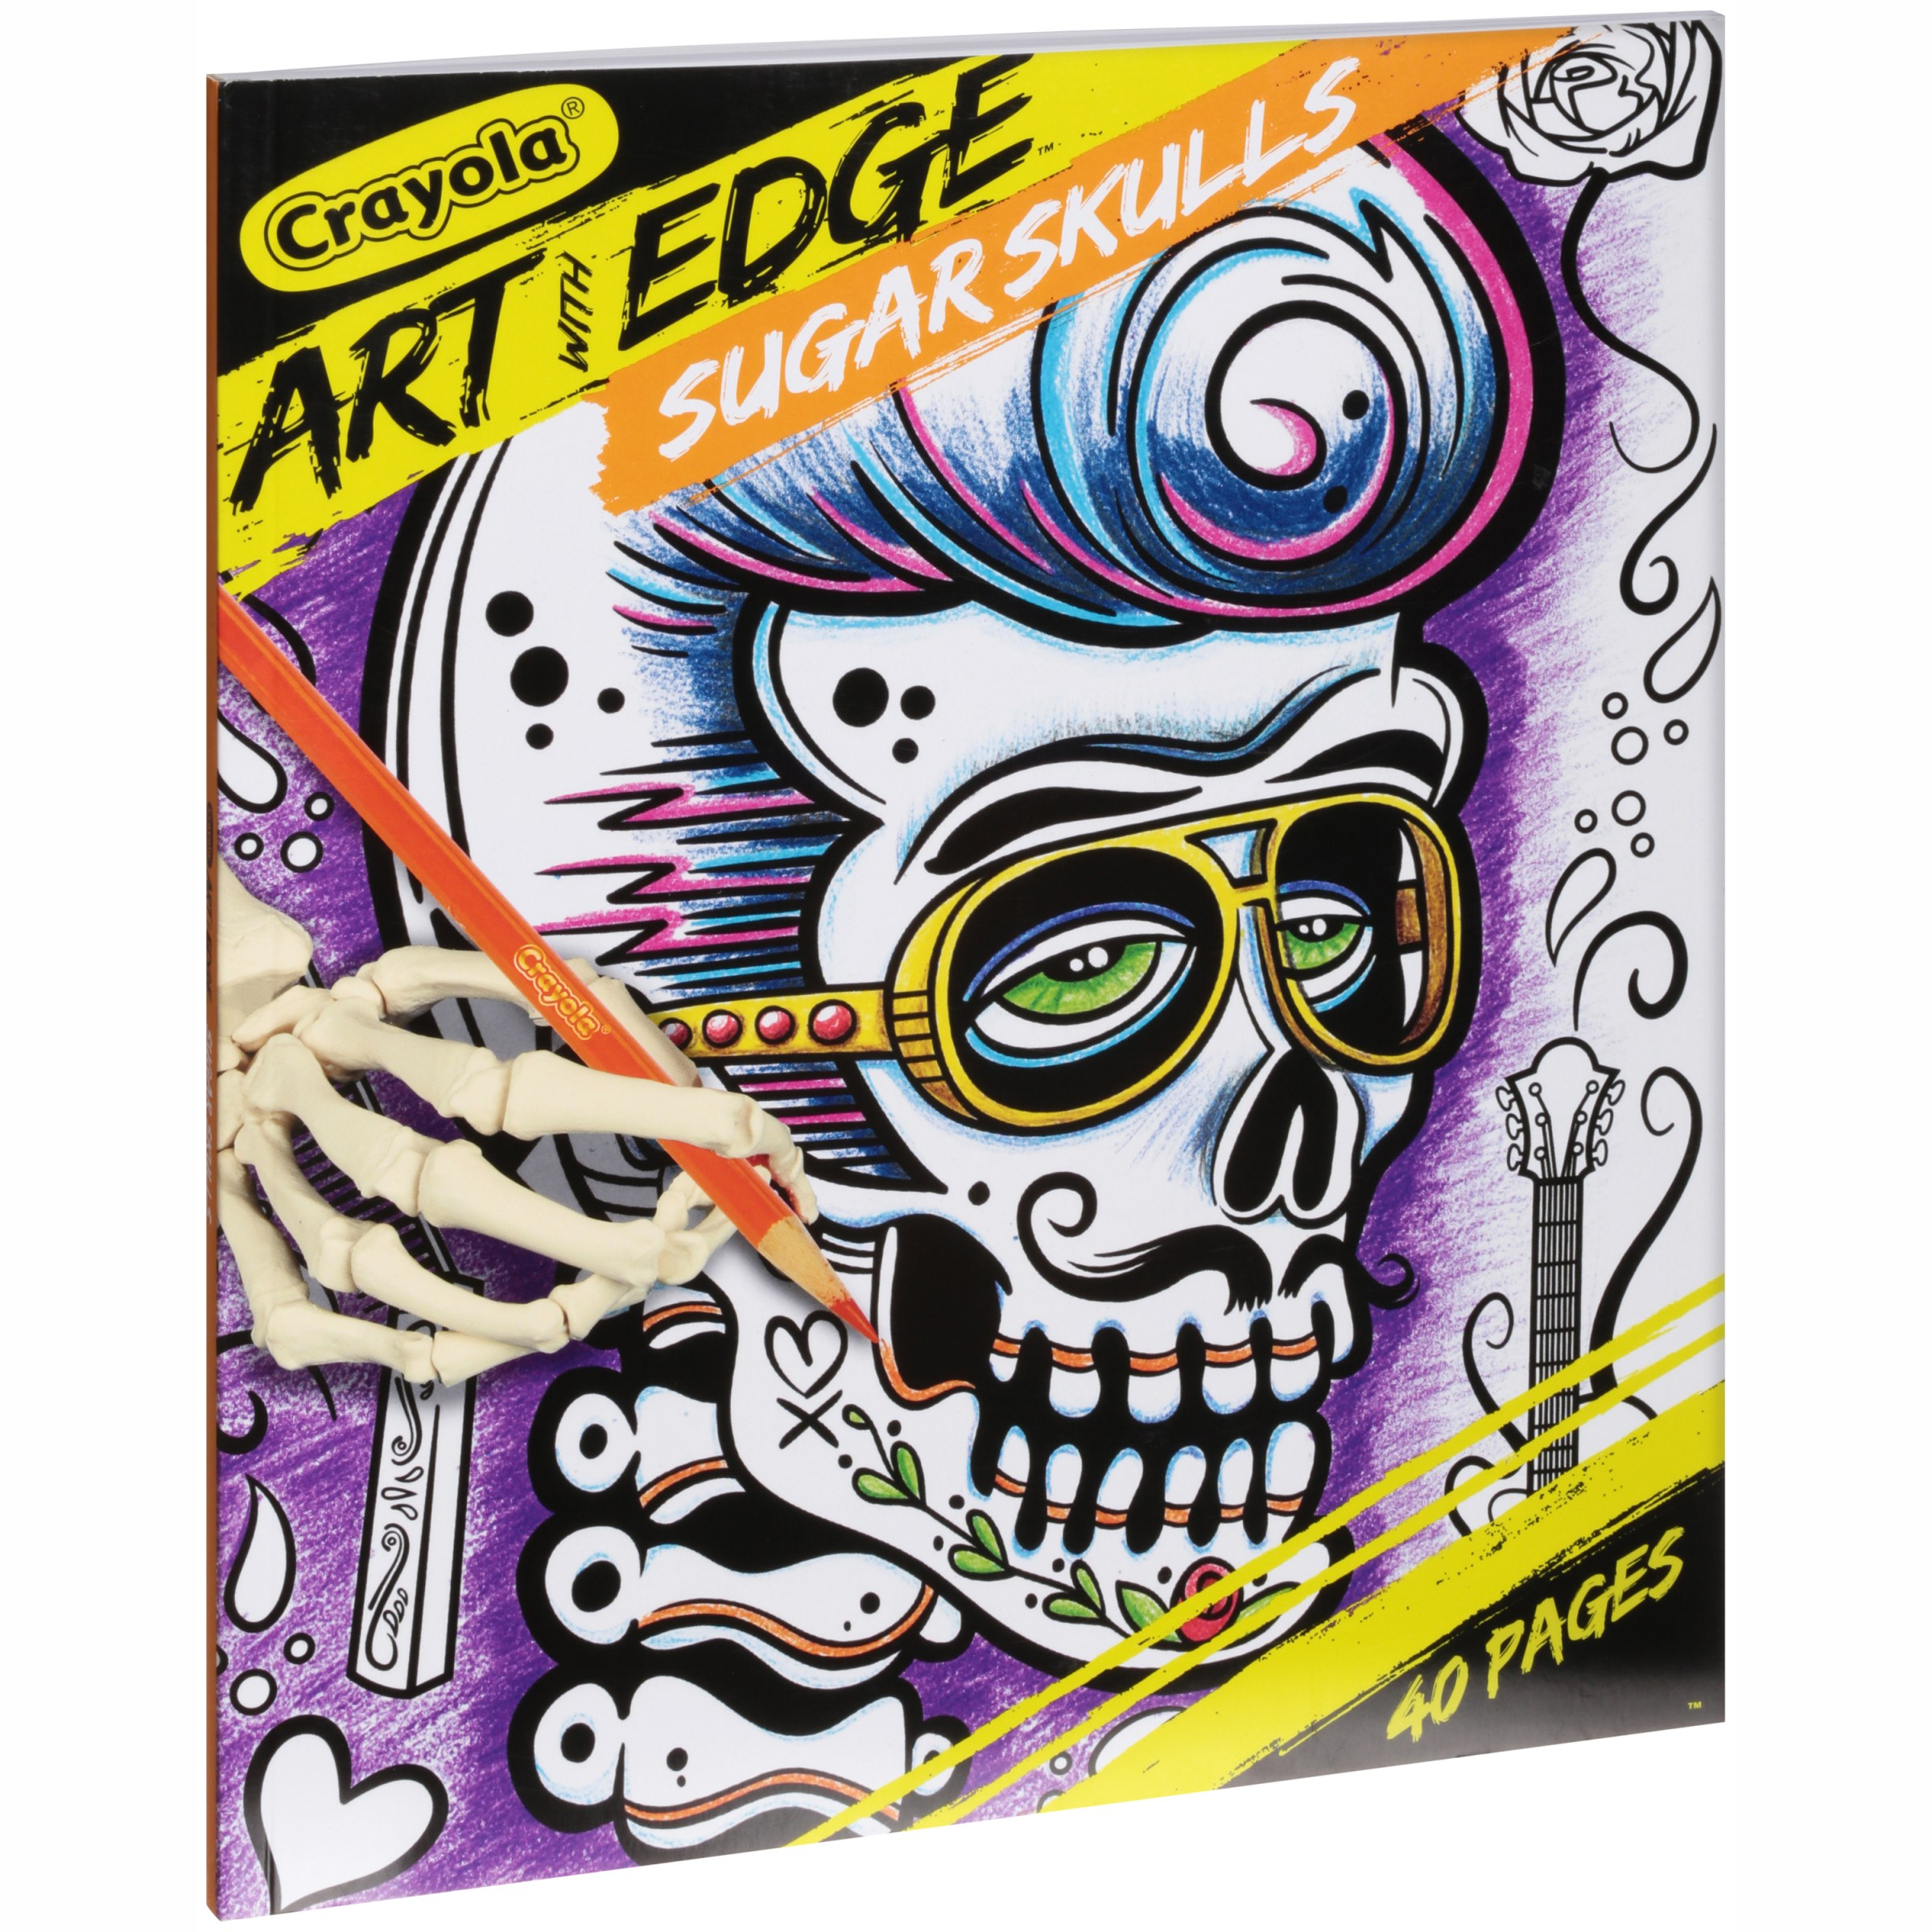 Crayola Art With Edge, Sugar Skulls, 40�Premium Coloring Pages by Crayola